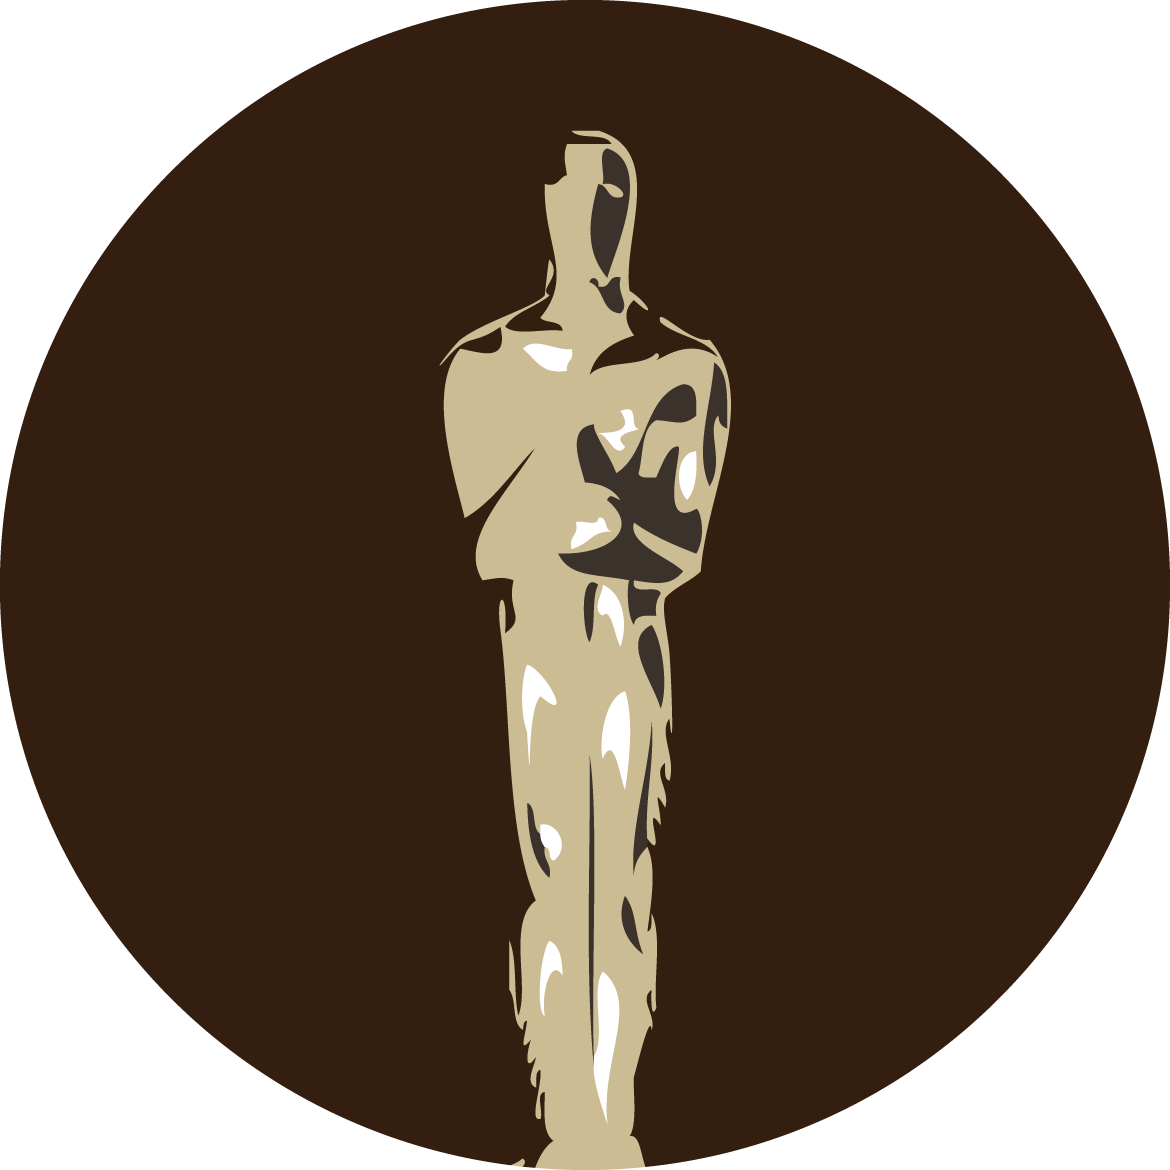 Academy Award - Best Picture's icon